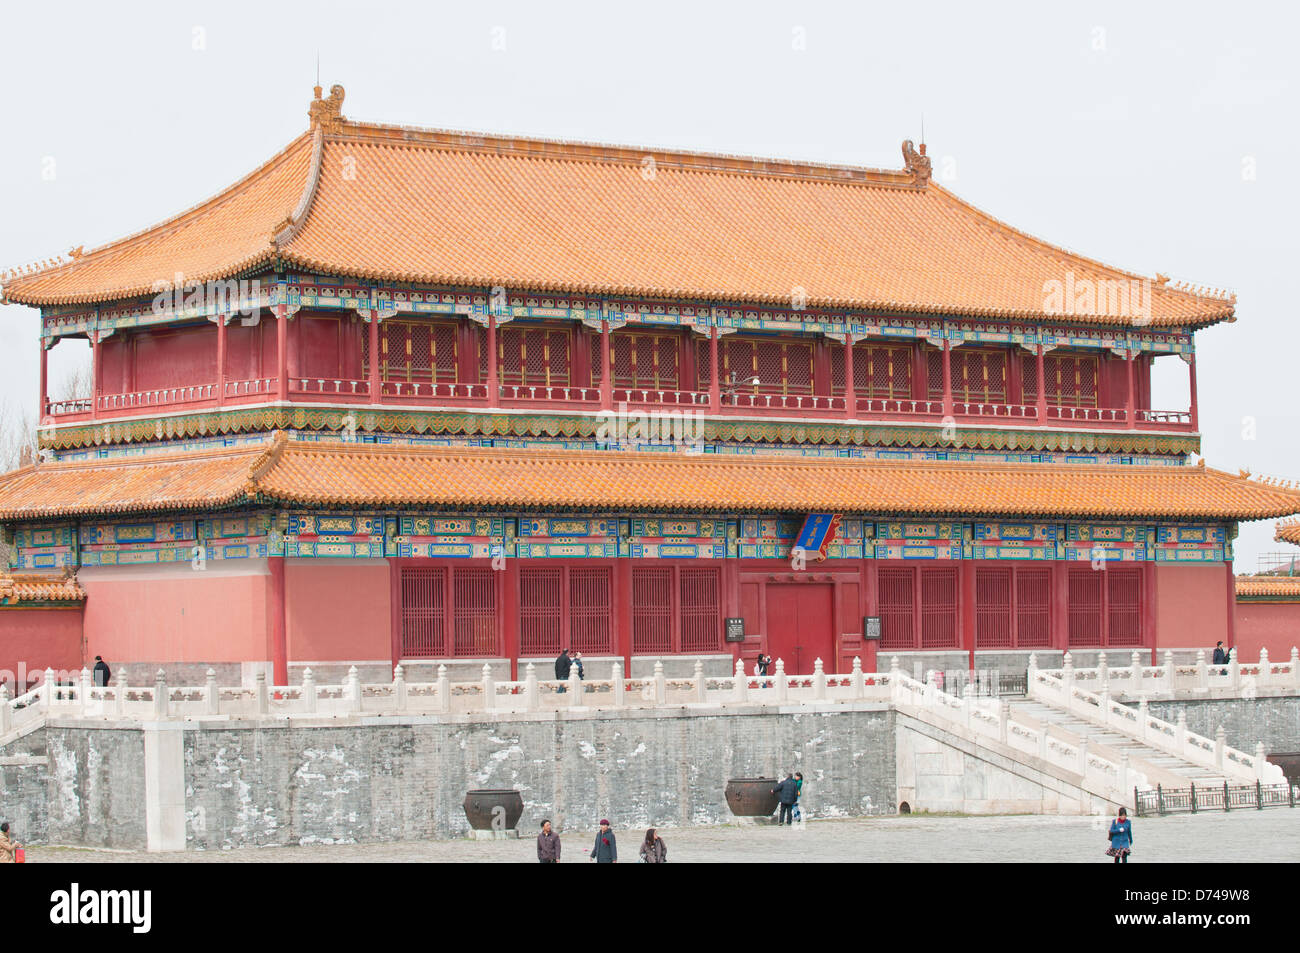 Hall of Enhanced Righteousness (Hongyi Pavilion) in Forbidden City, Beijing, China - Stock Image